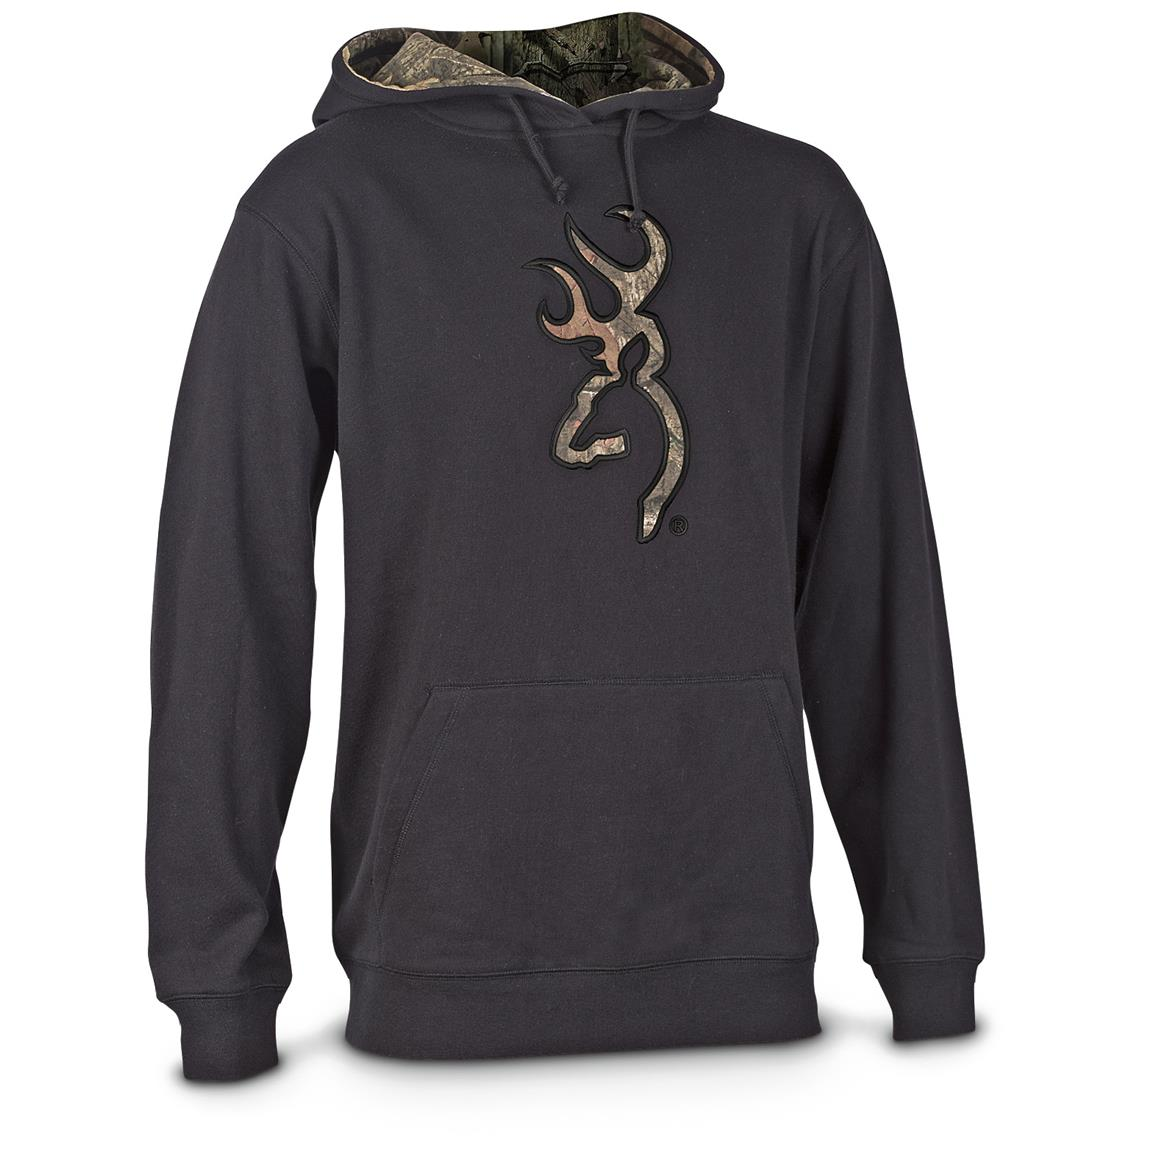 Browning Men's Applique Buckmark Hoodie Sweatshirt, Black / Mossy Oak Infinity